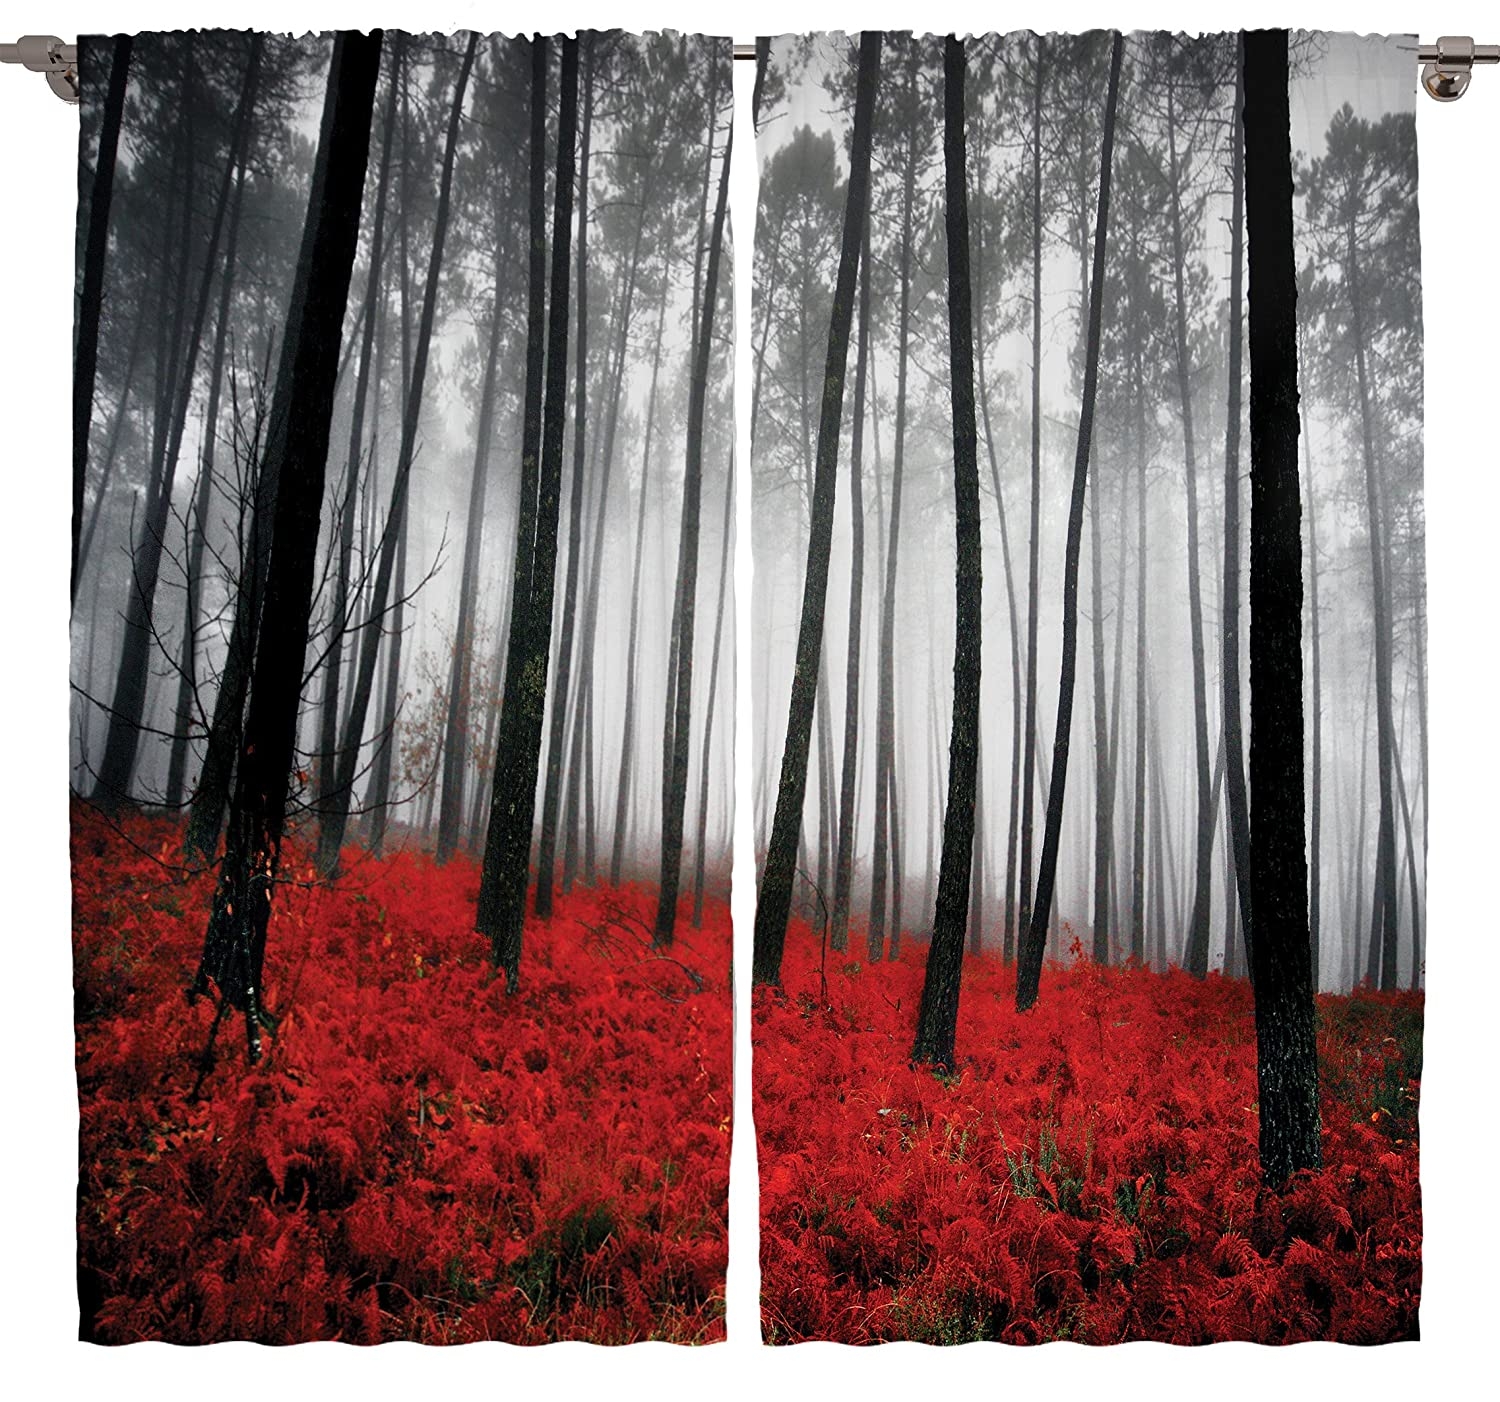 Amazon.com: Mystic Forest Digital Photography Print Curtains Home  Decorations For Bedroom Living Dining Room Kids Youth Room 2 Panels Set Art  Prints Nature ...